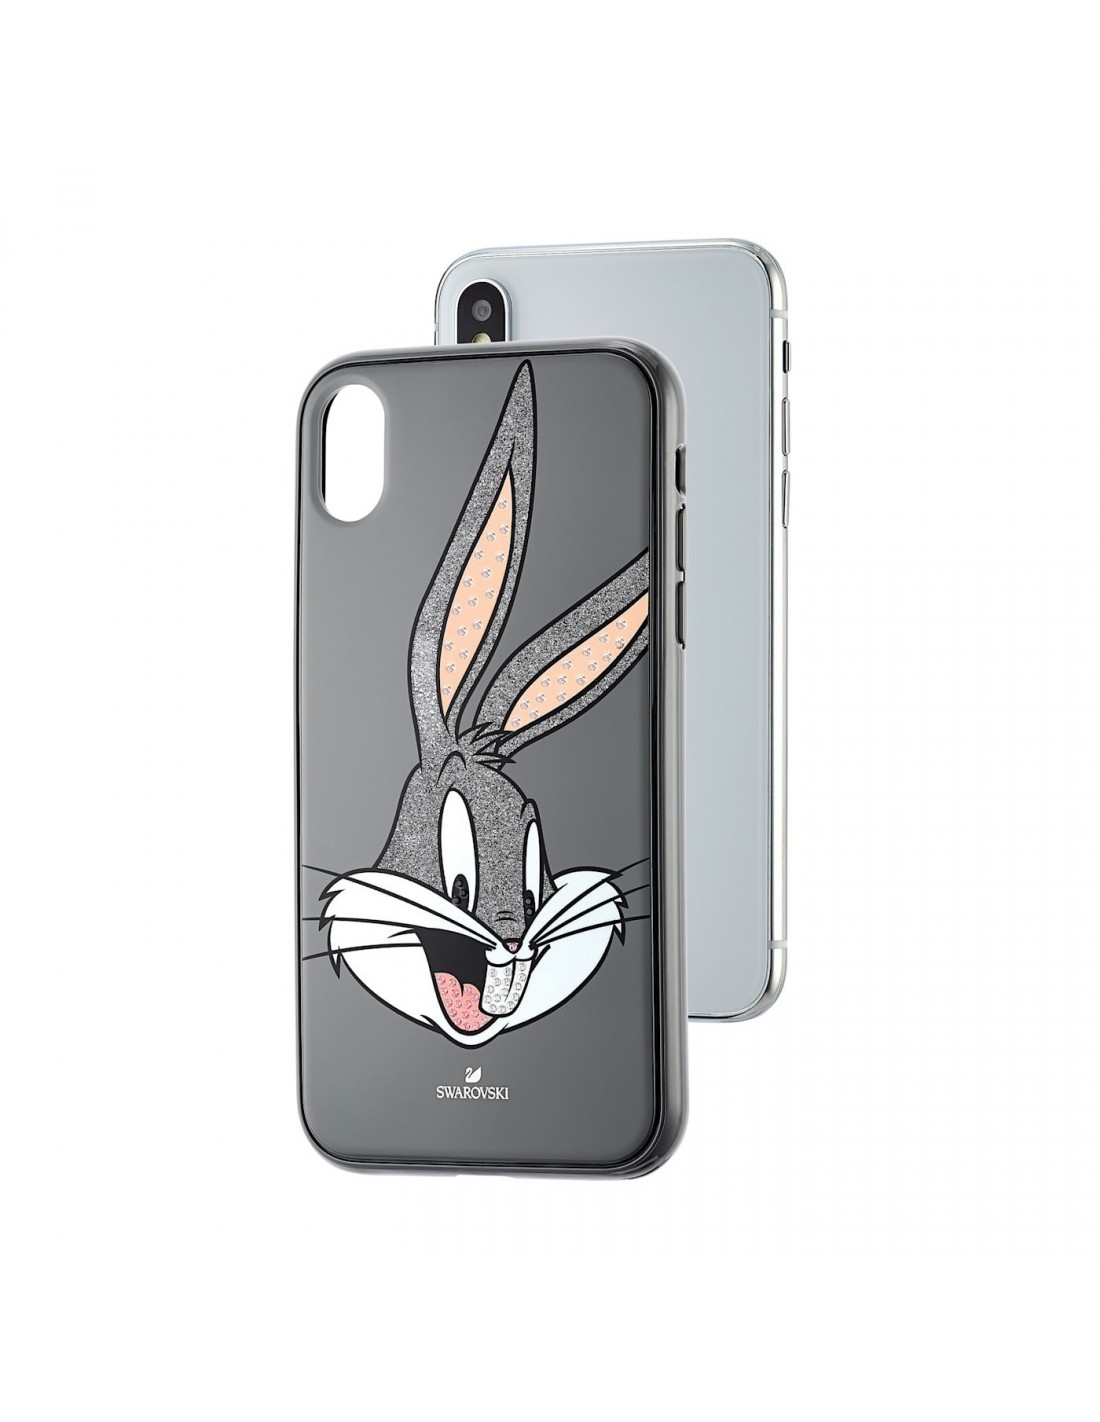 Bugs Bunny Looney Tunes Cartoon Funny iphone case